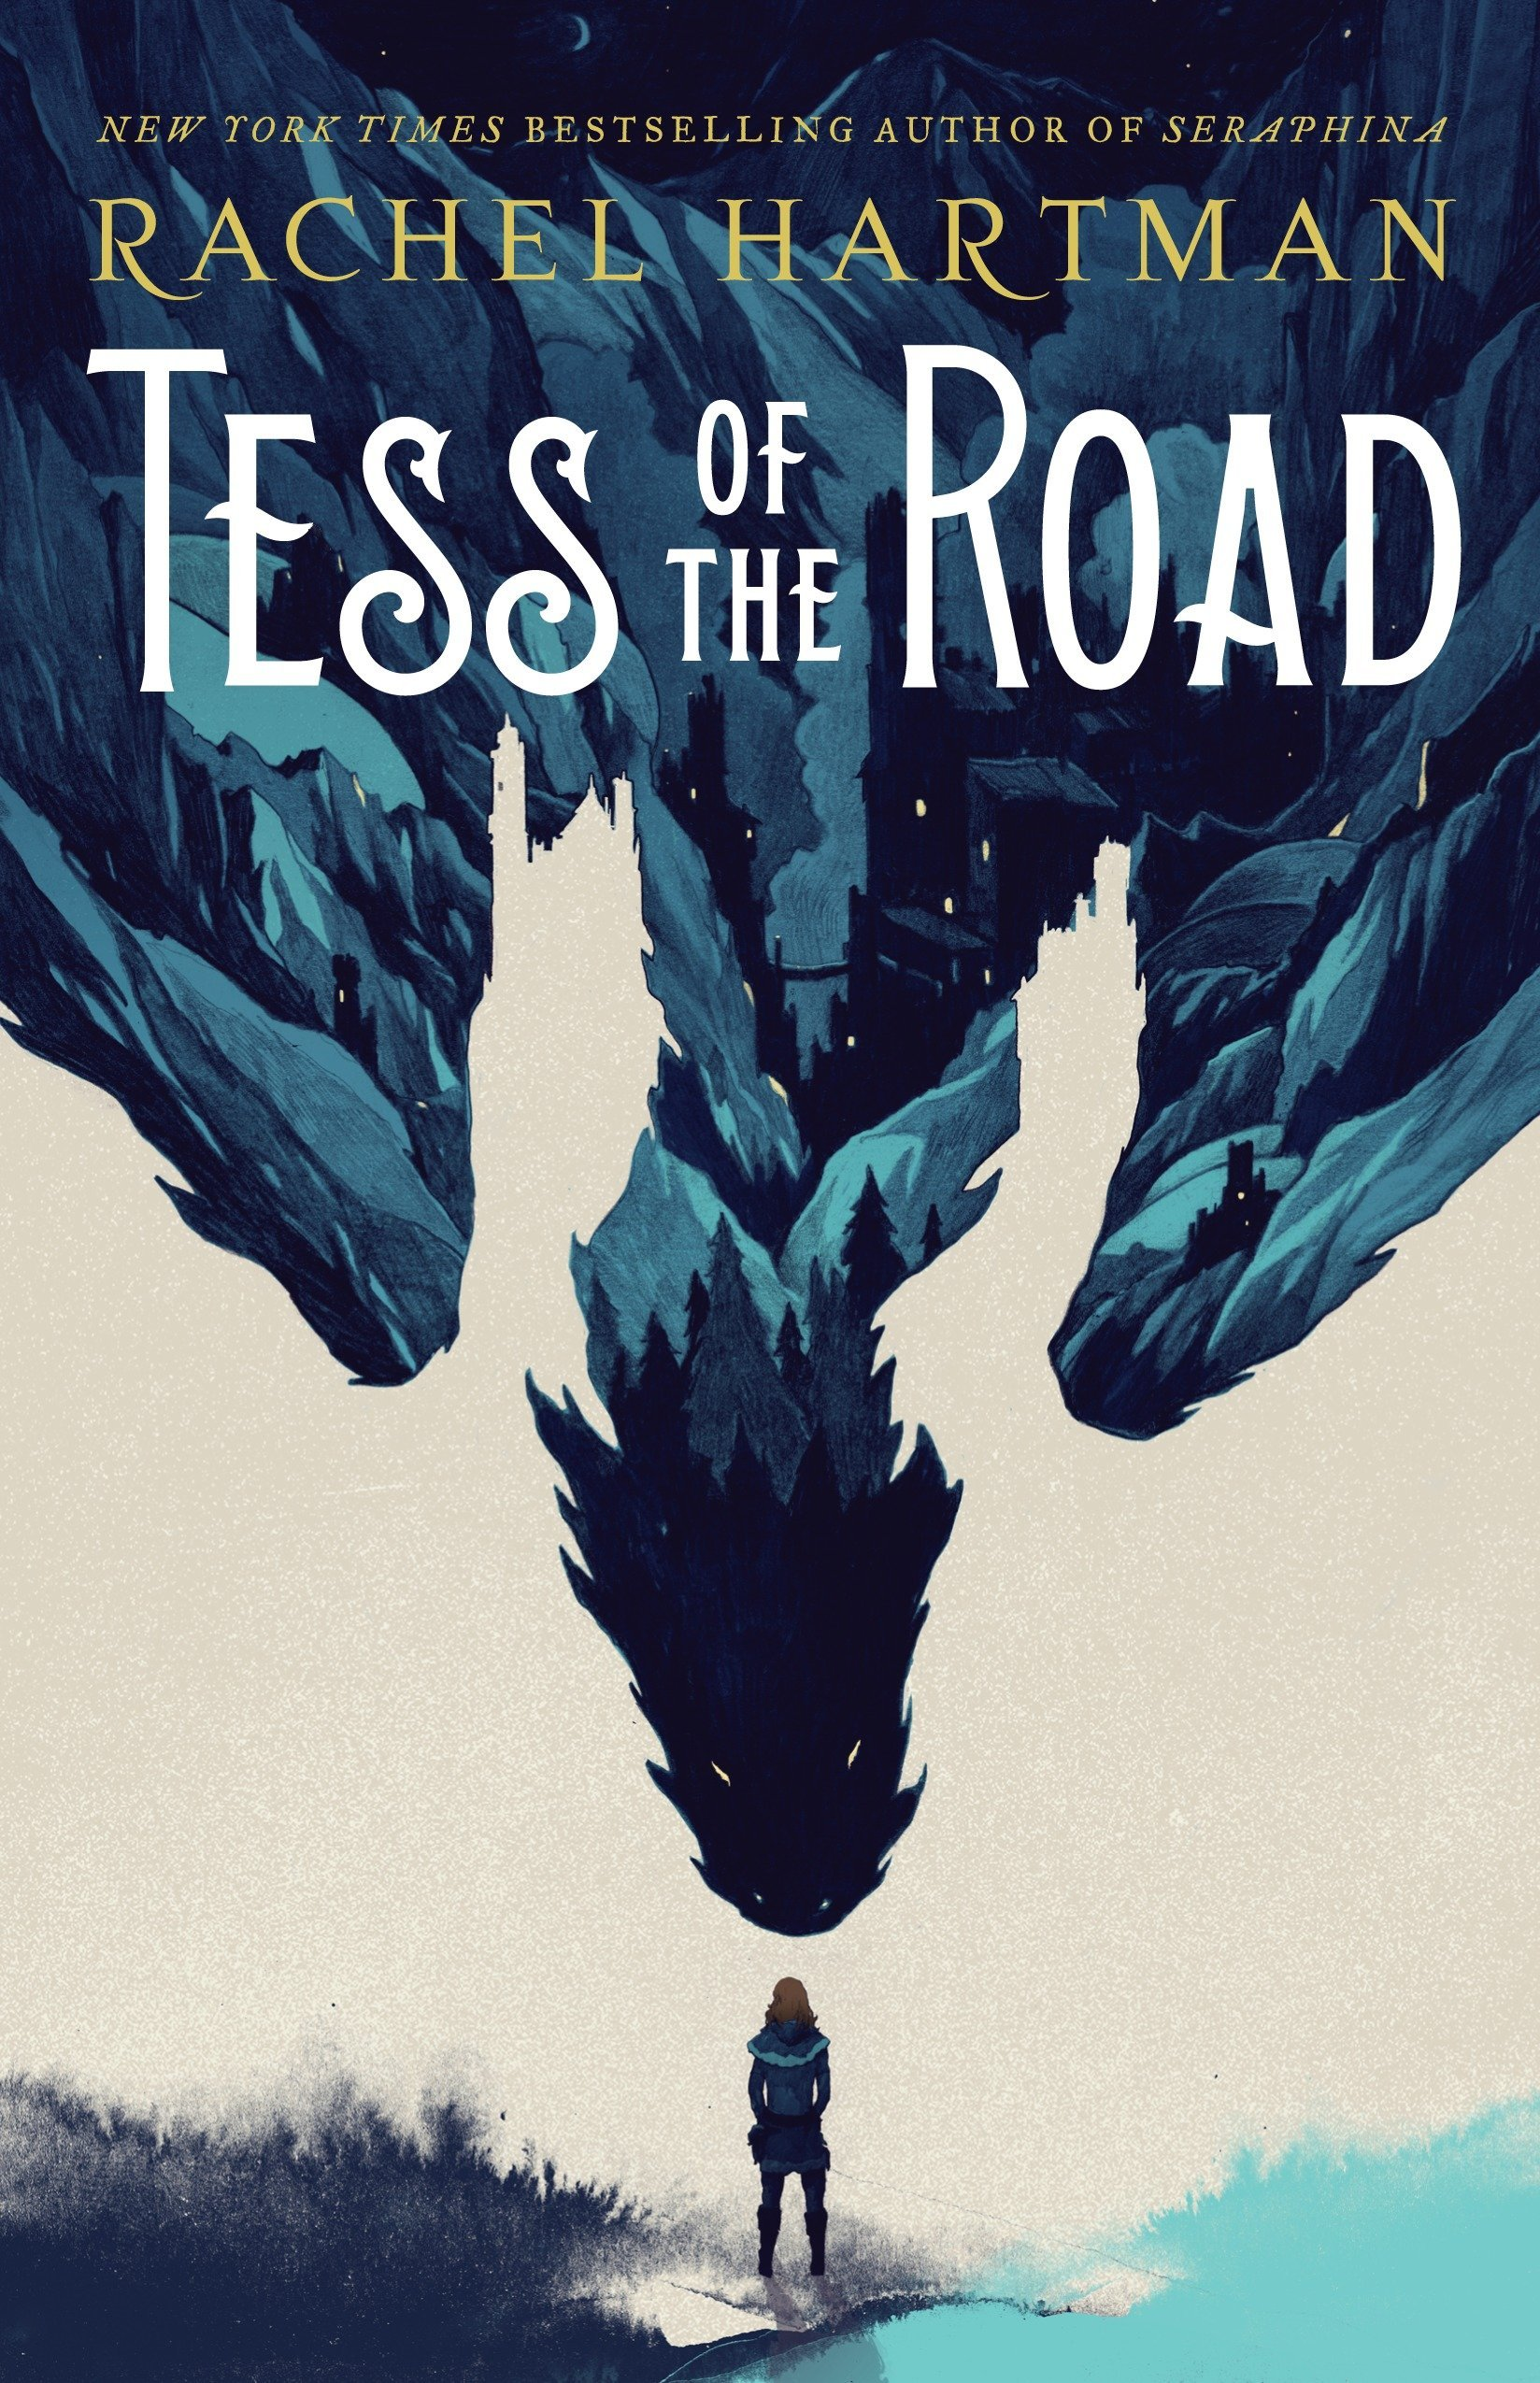 Image result for tess of the road by rachel hartman